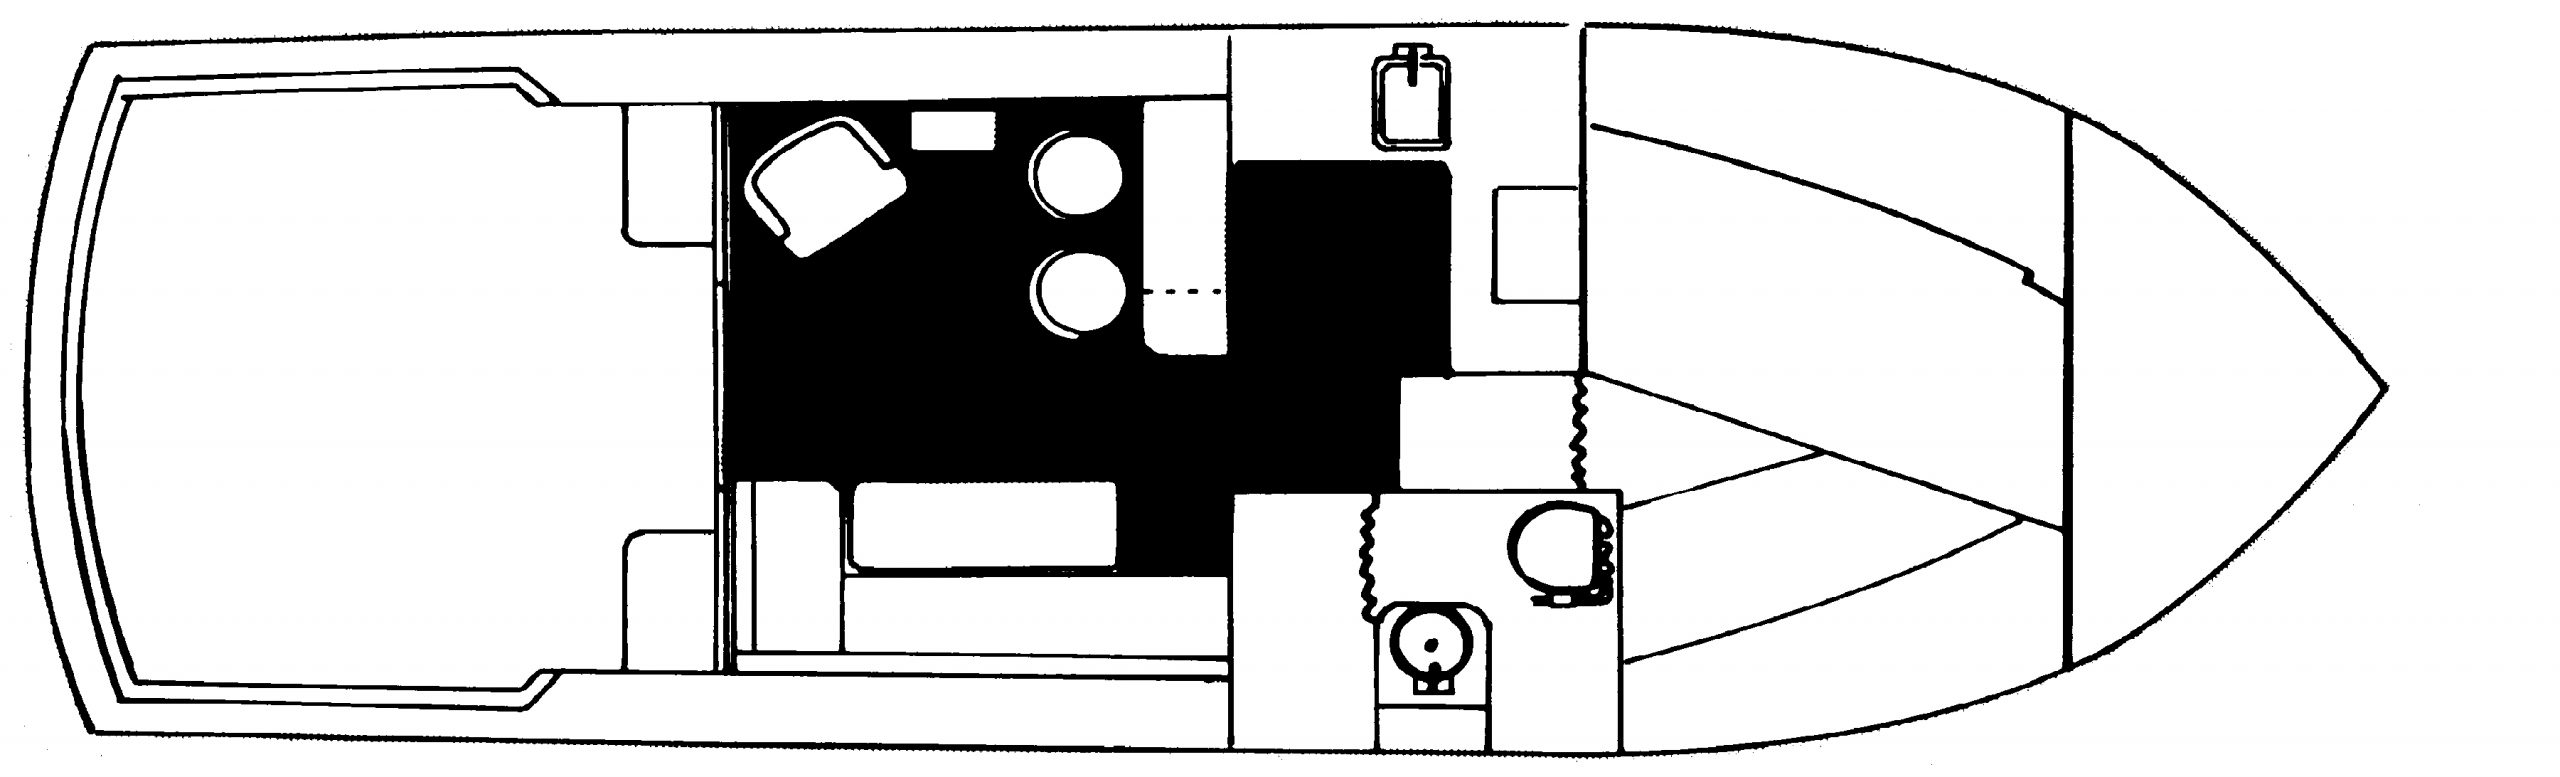 325 Convertible Floor Plan 2